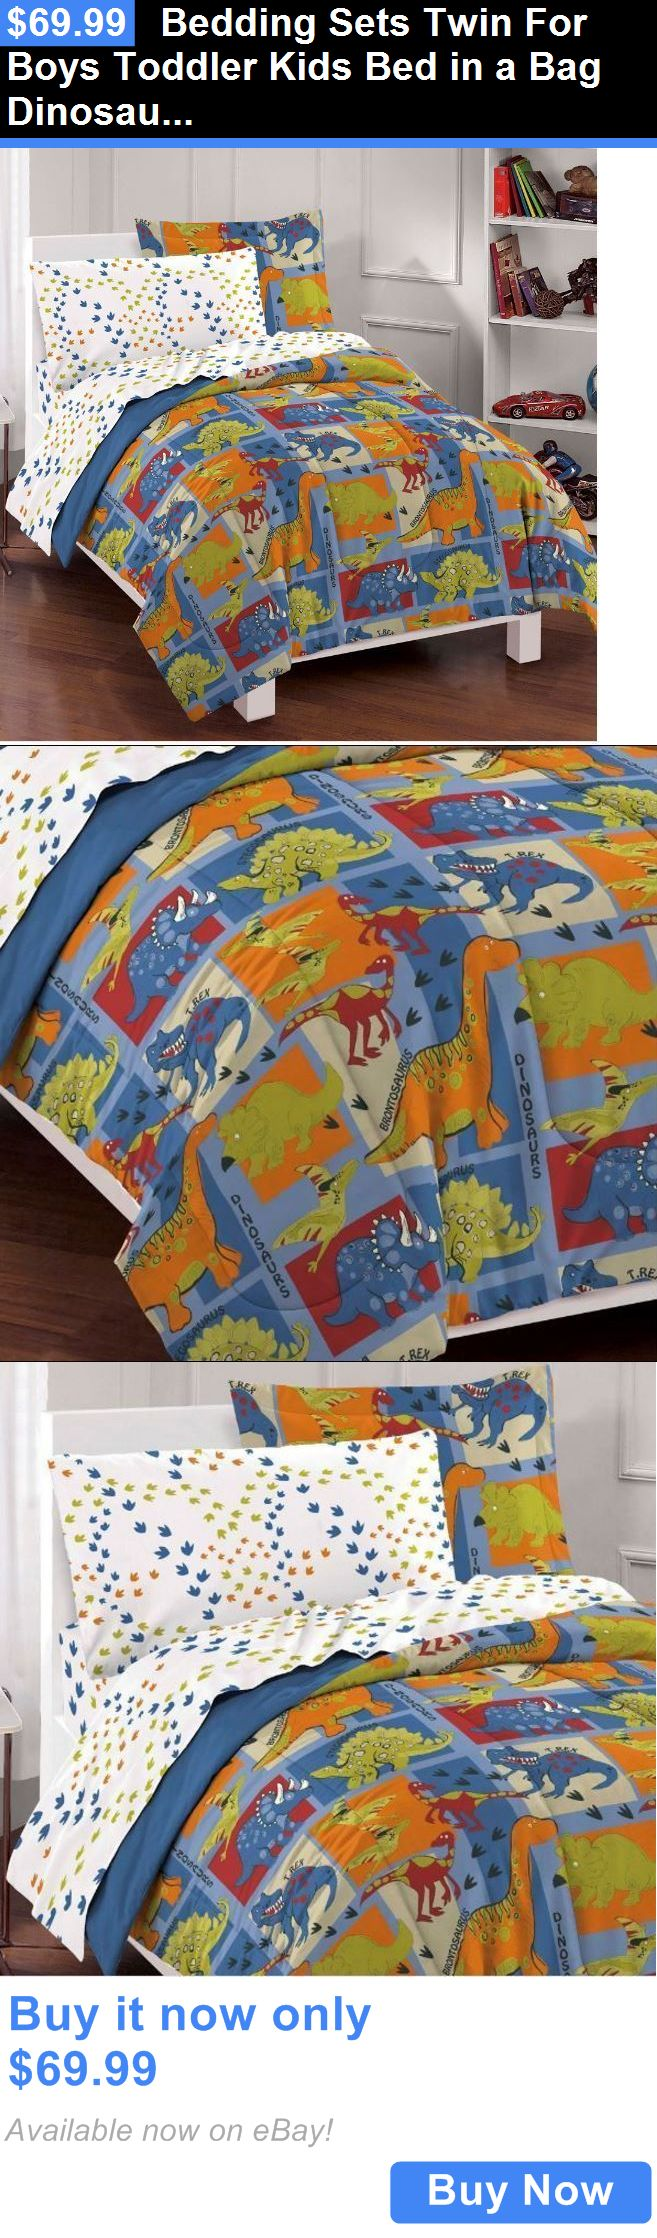 Kids at Home: Bedding Sets Twin For Boys Toddler Kids Bed In A Bag Dinosaurs Comforter Childs BUY IT NOW ONLY: $69.99